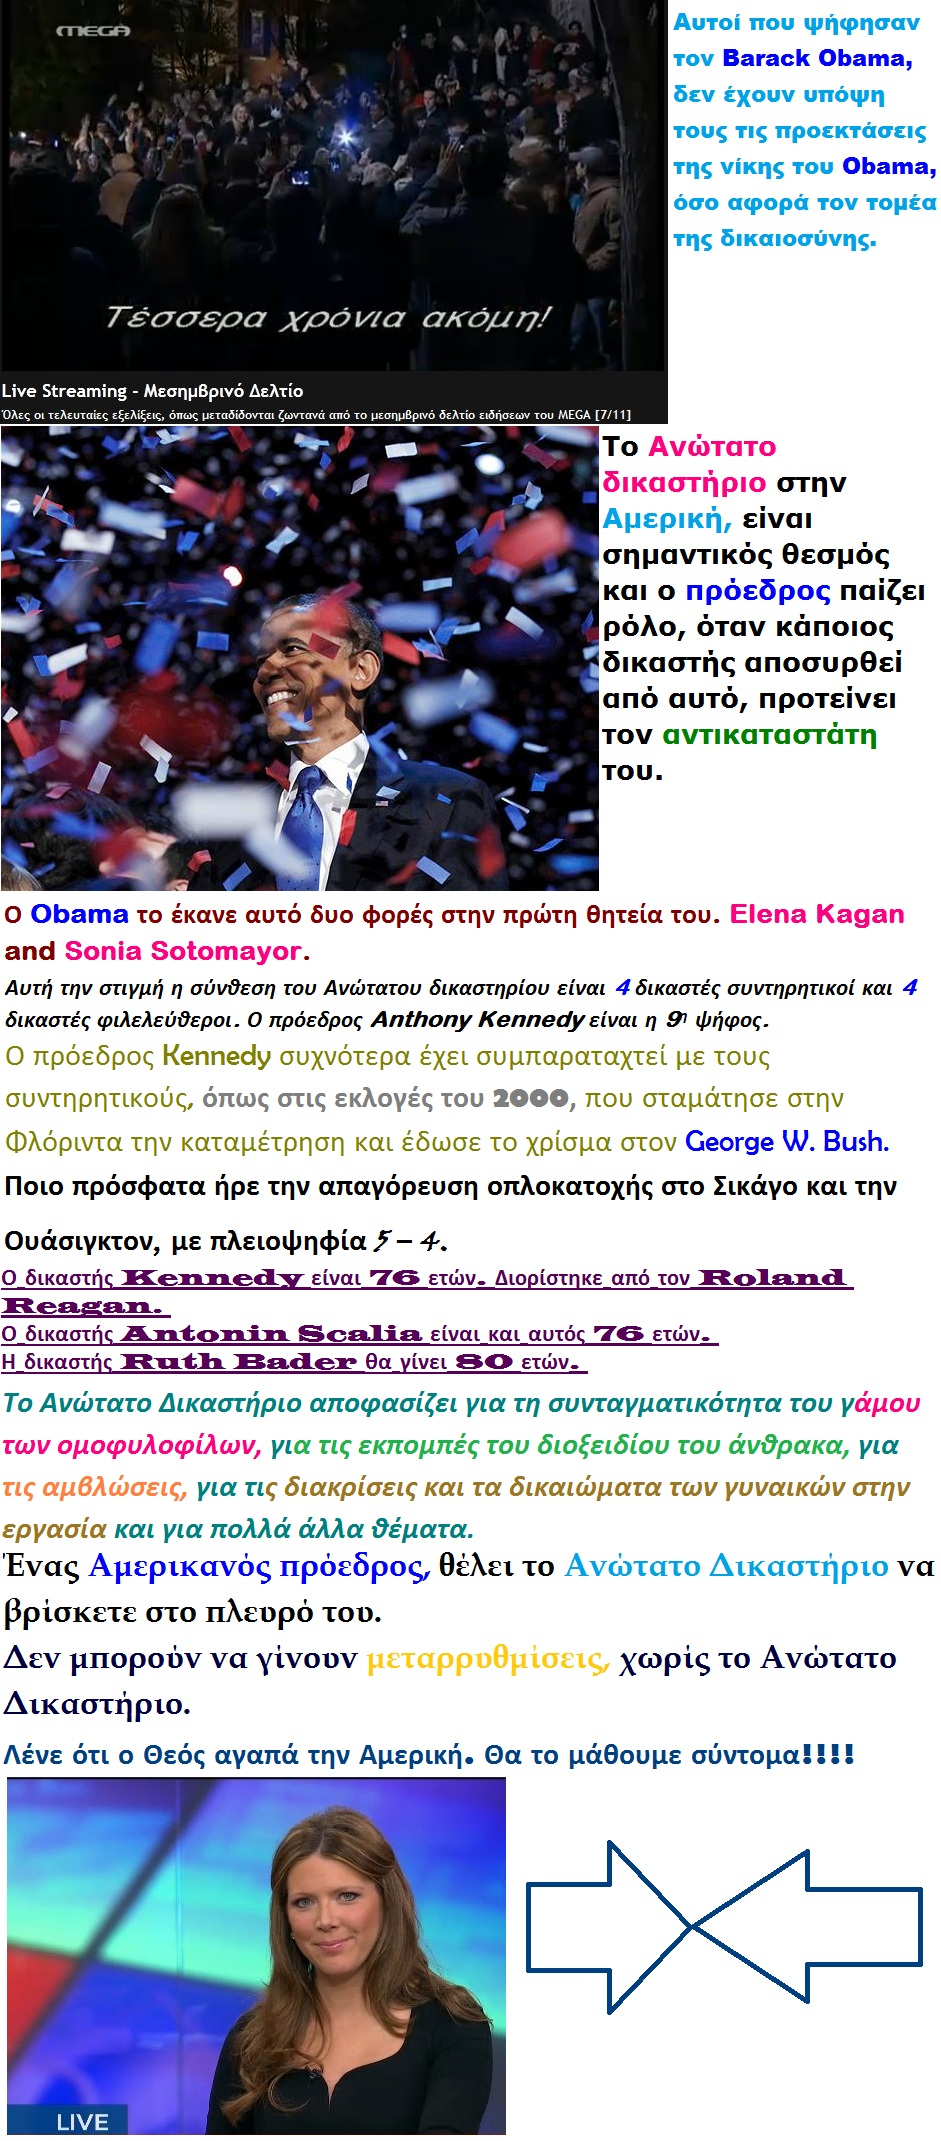 USA OBAMA WIN FOUR MORE YEARS 02 02 071112